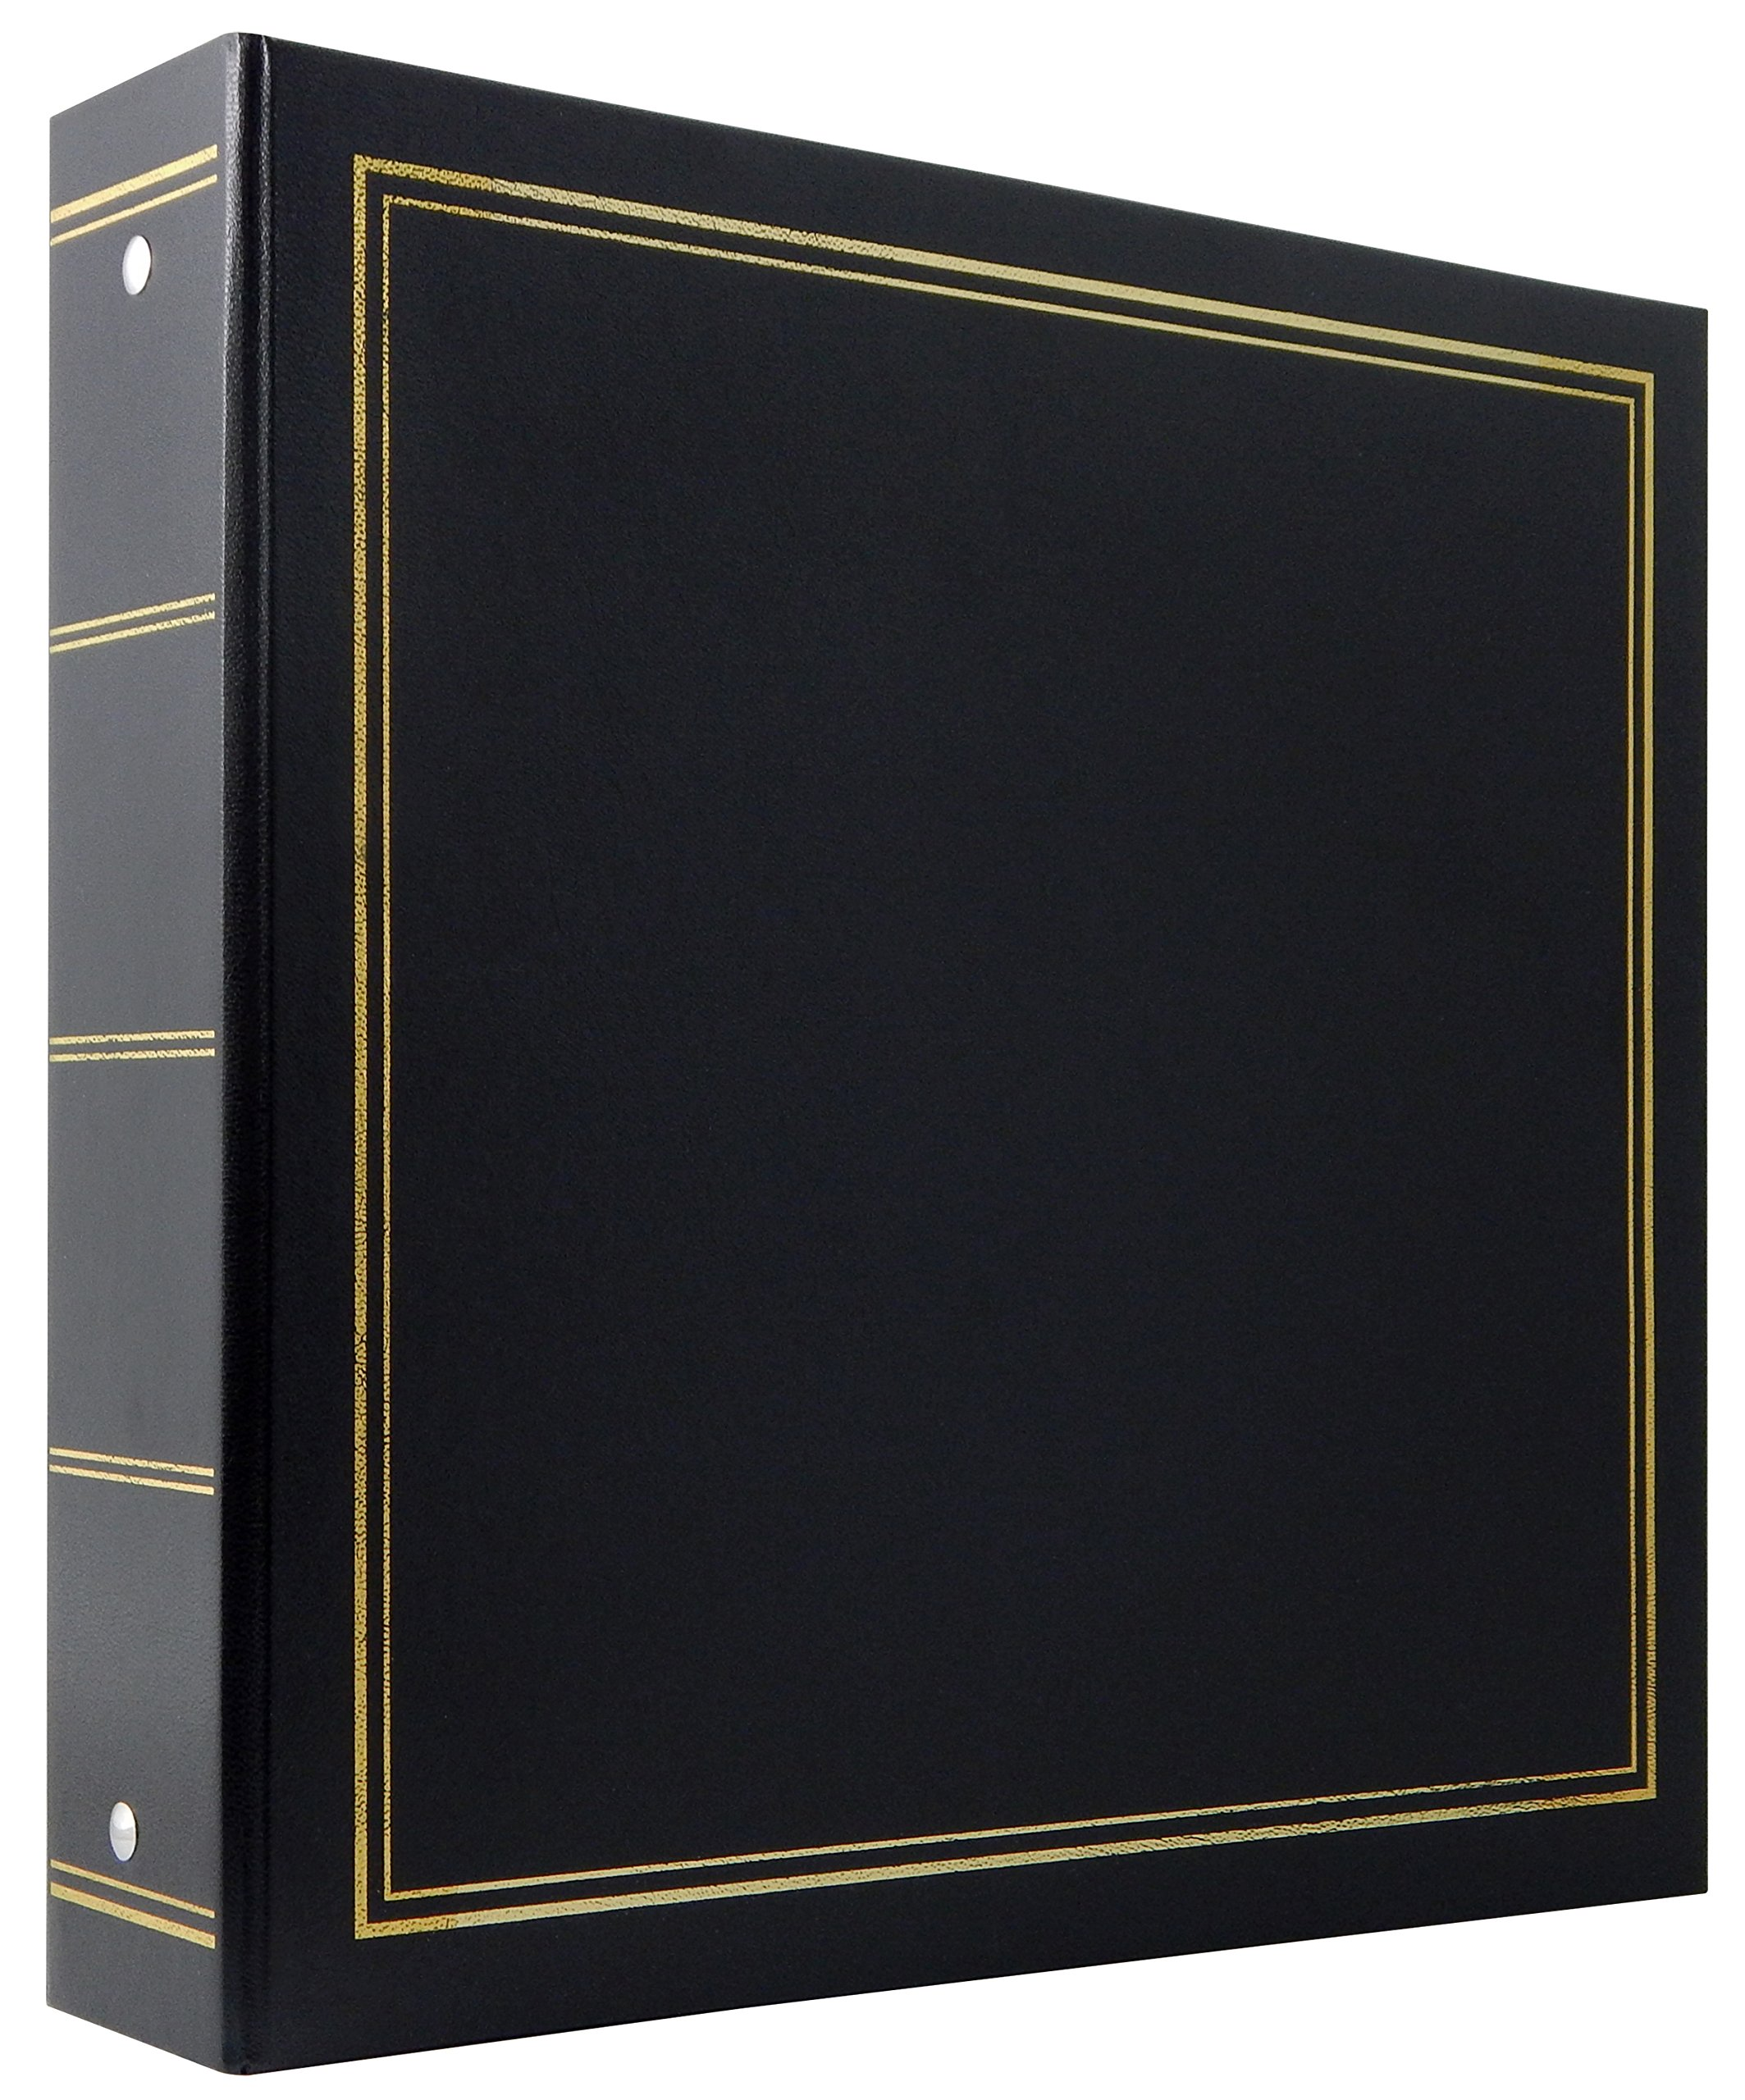 MBI 4x6 Inch Library Collection 400 Pocket Photo Album, Black (804004)